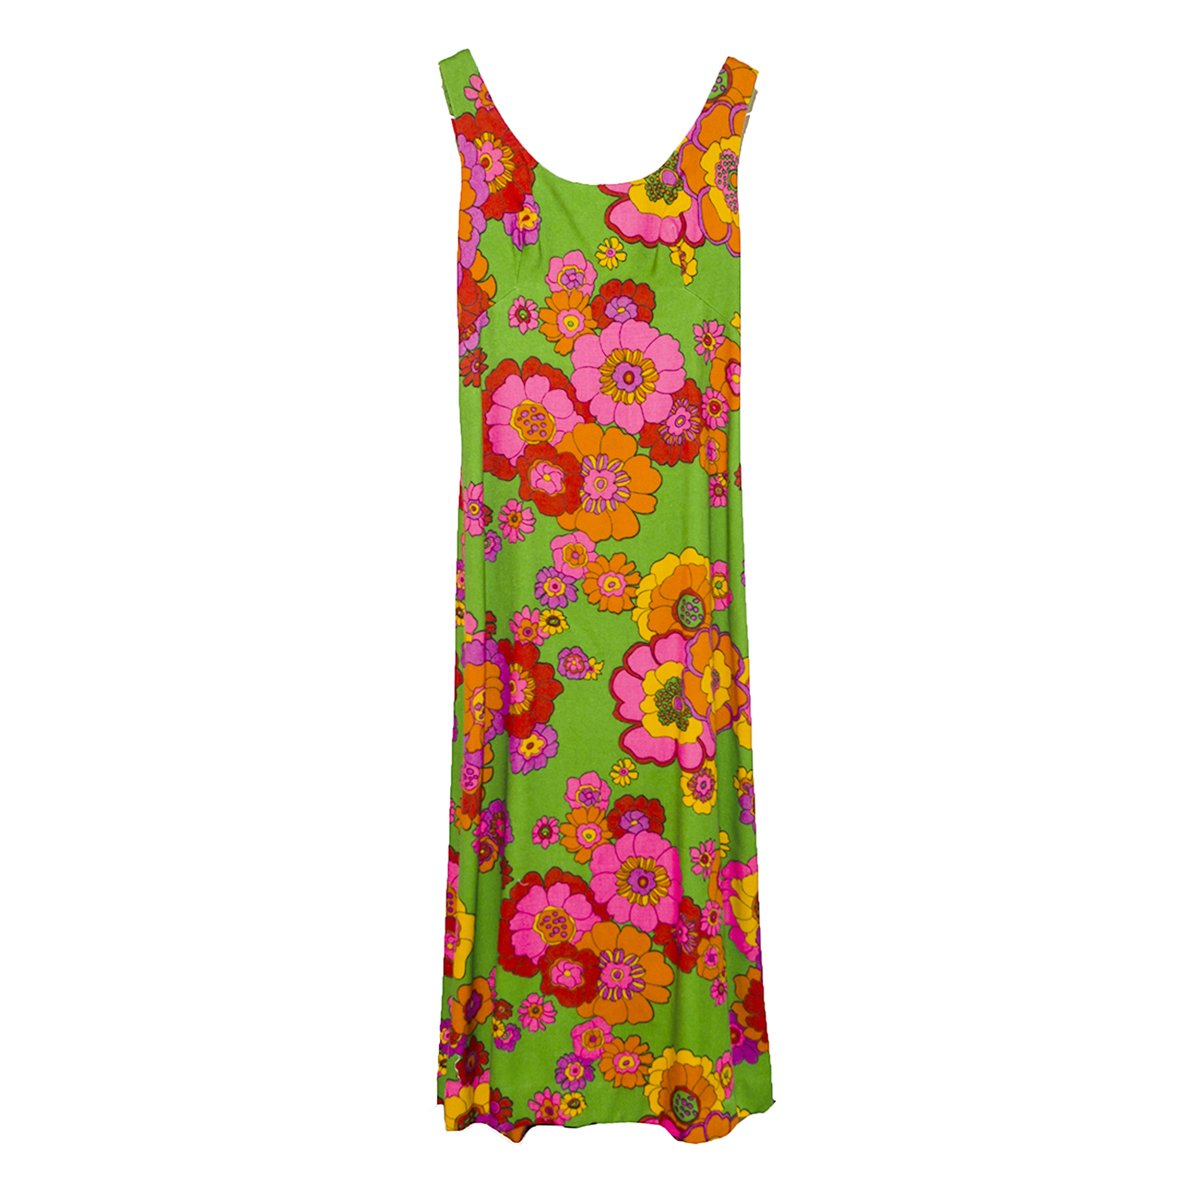 1970s Floral Maxi Dress, Sleeveless with Rhinestone Buttons